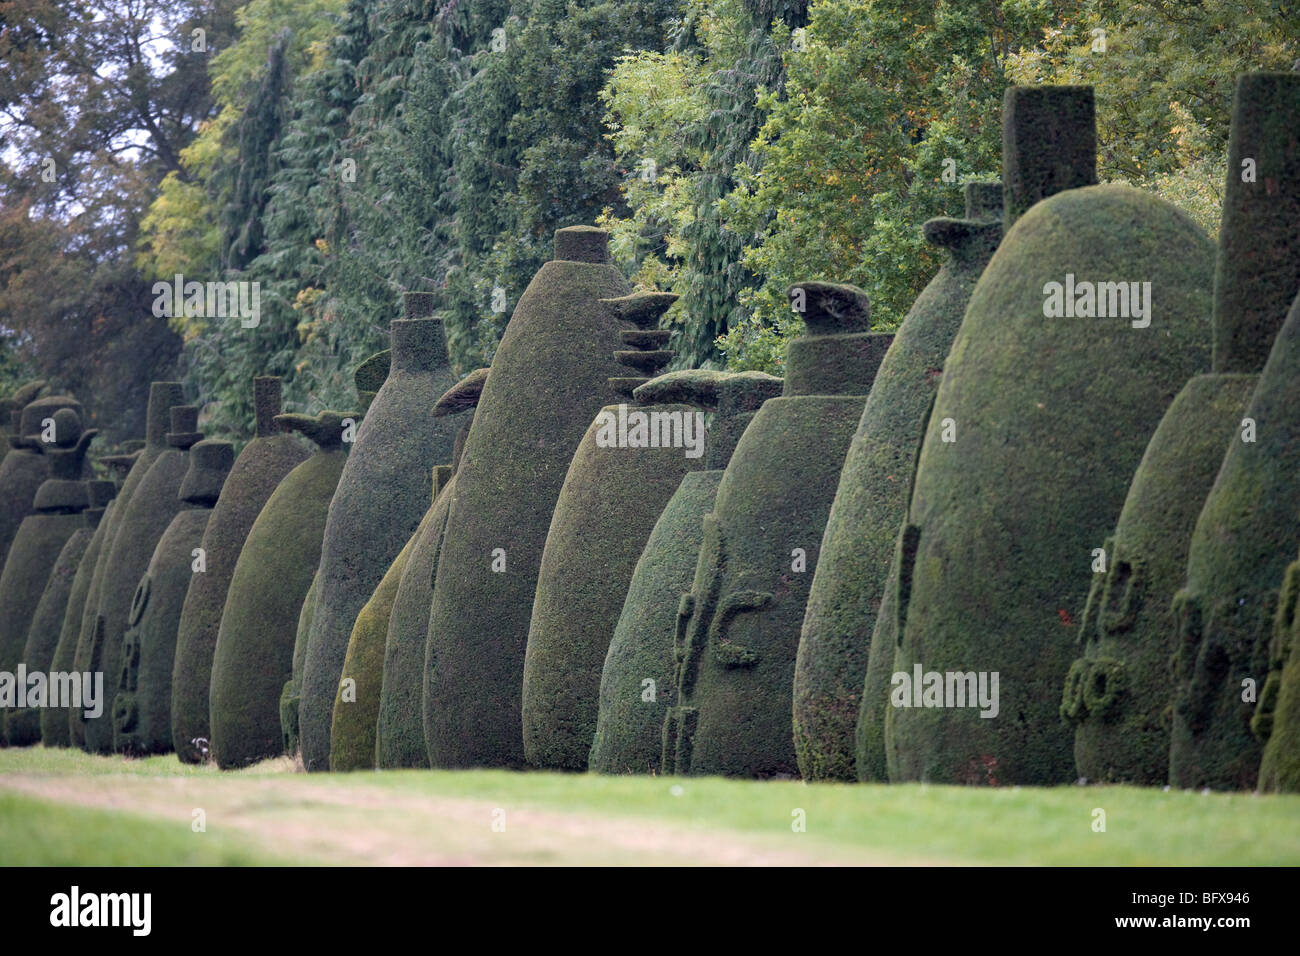 The Yew Tree Avenue at Clipsham,Rutland a collection off 150 clipped yew trees over 200 years old - Stock Image